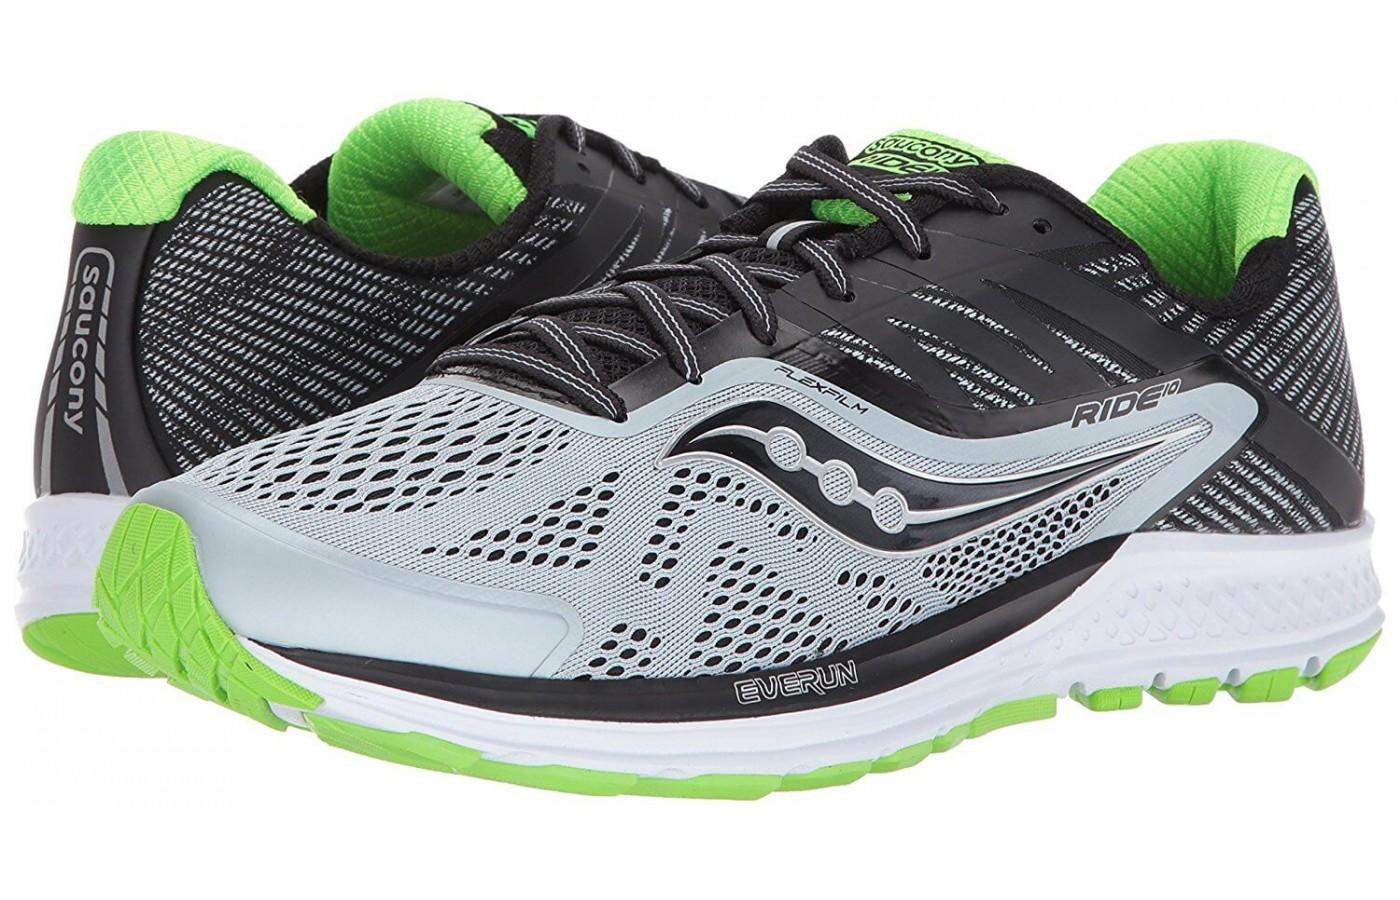 the saucony ride 10 is a great shoe for the neutral road runner